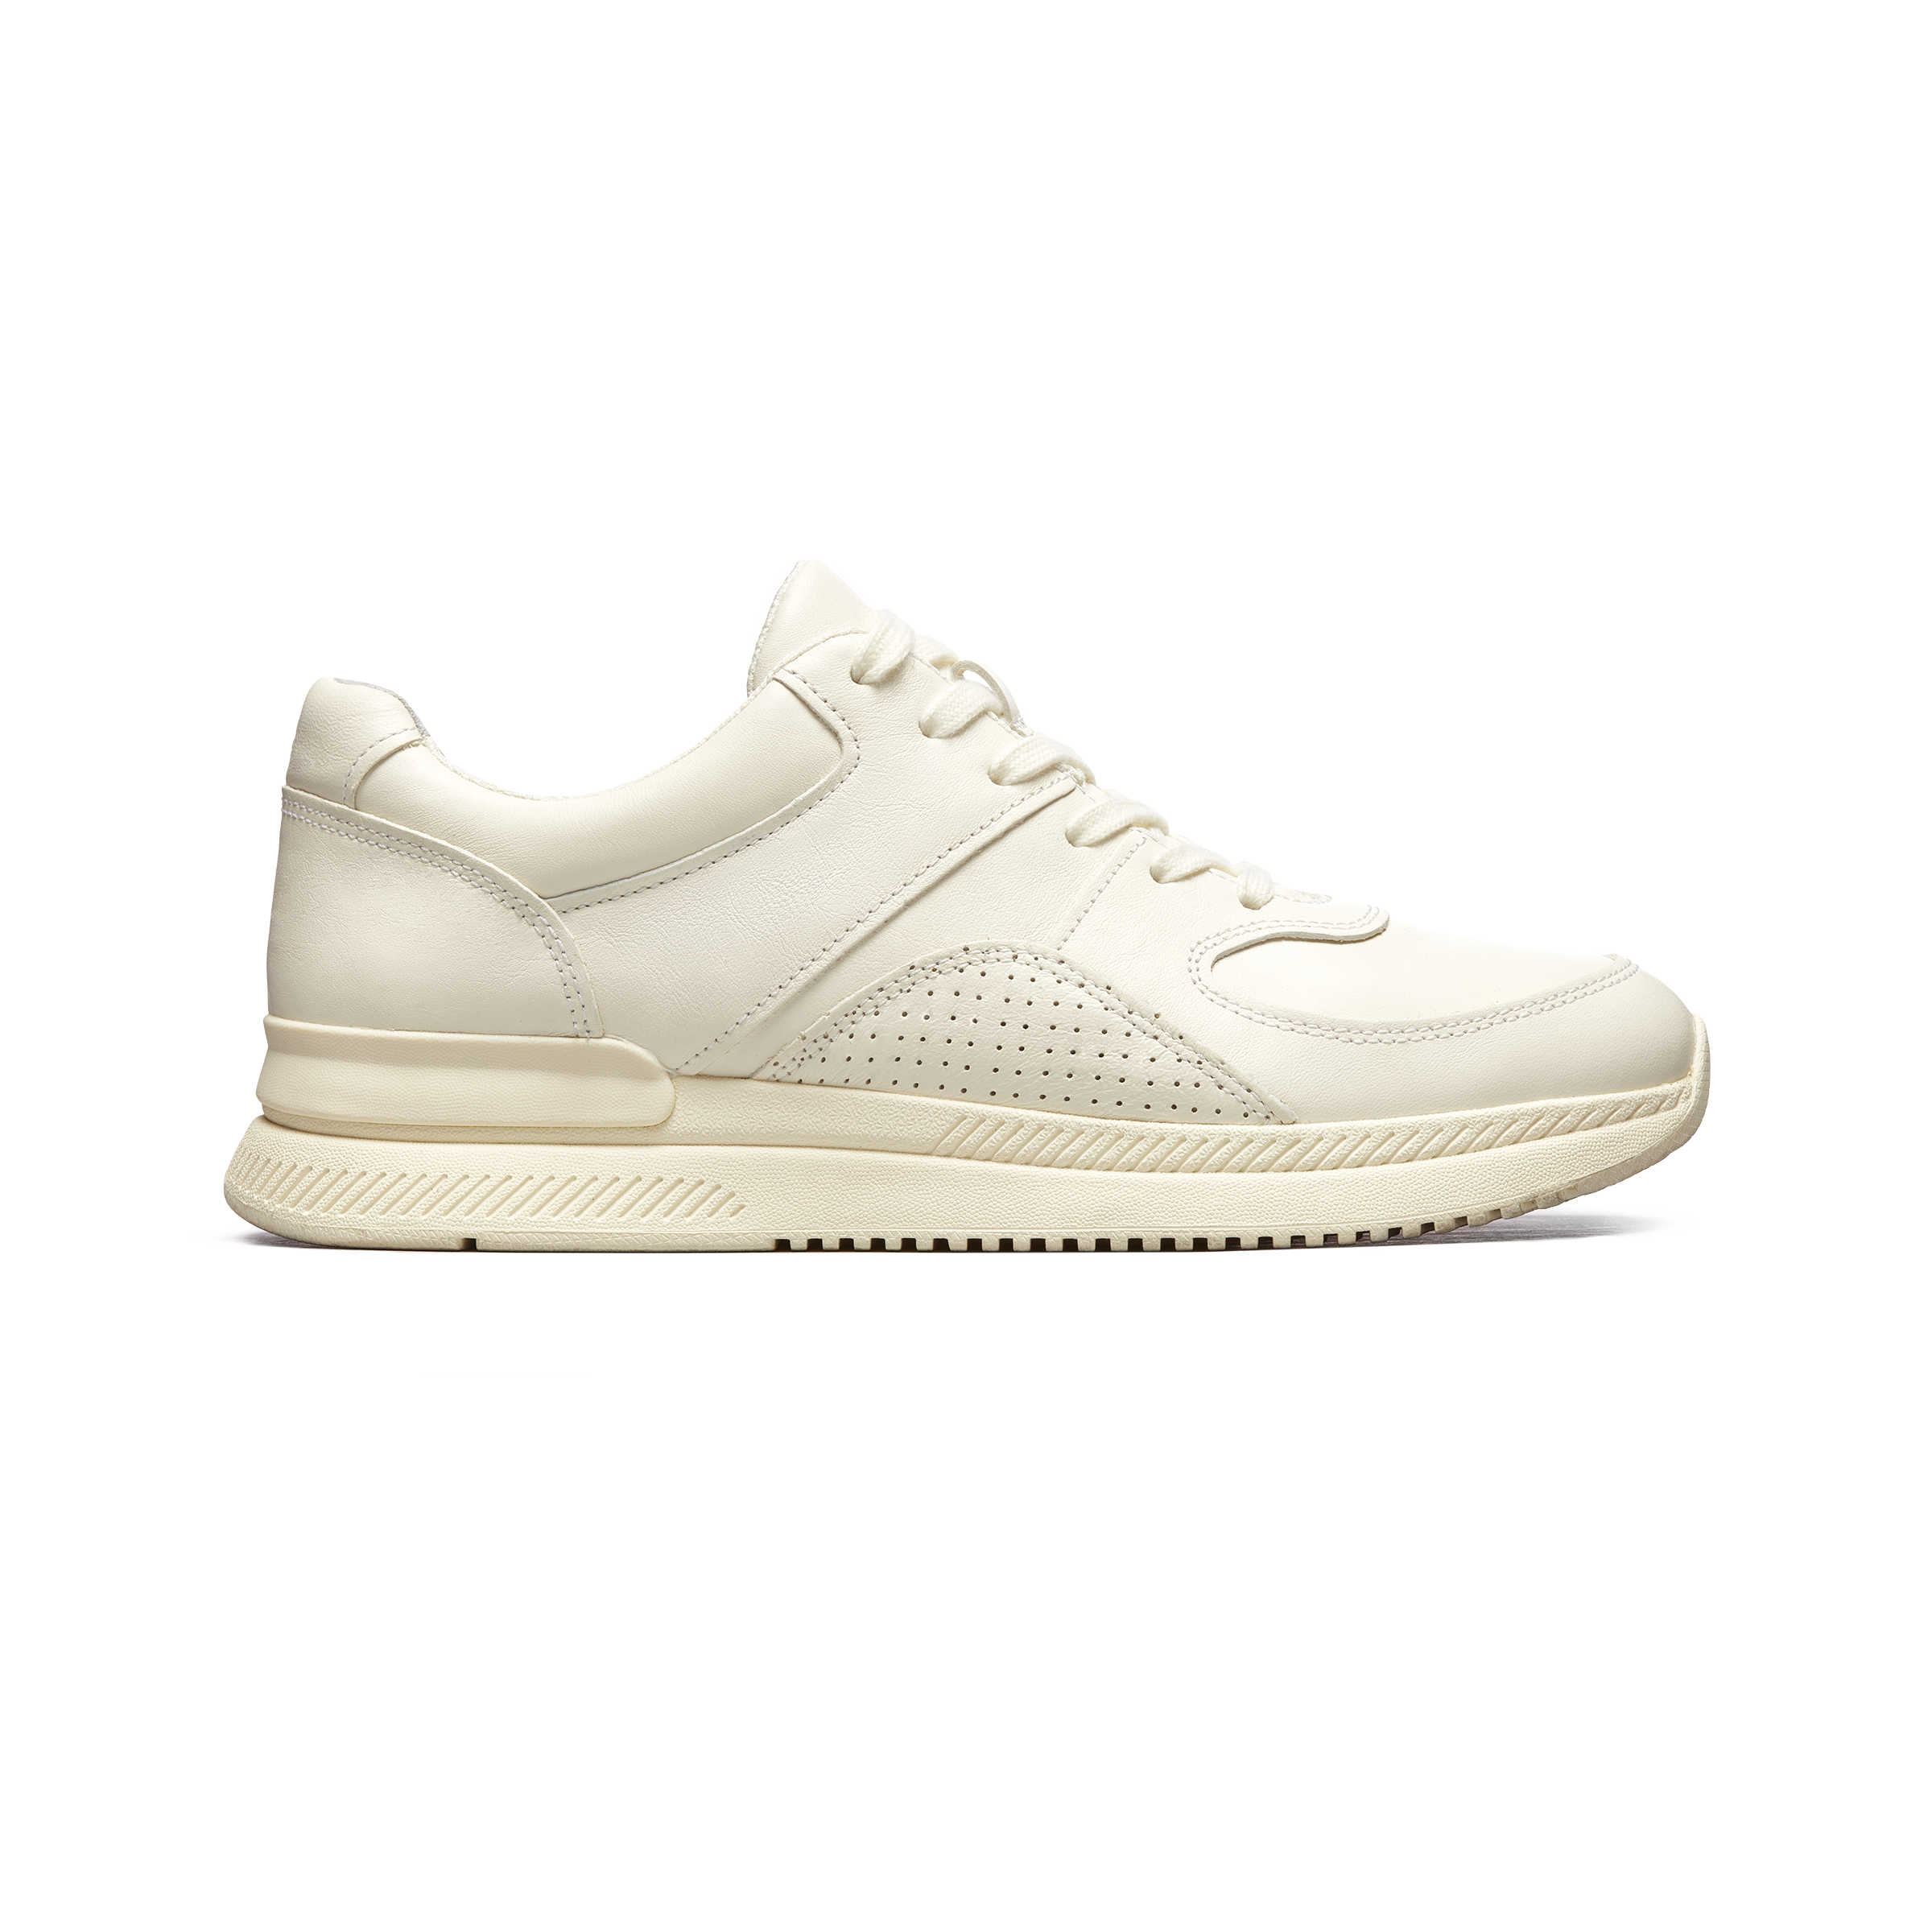 1516693e840a3 Best White Sneakers For Women - 2019 Cool New Trends